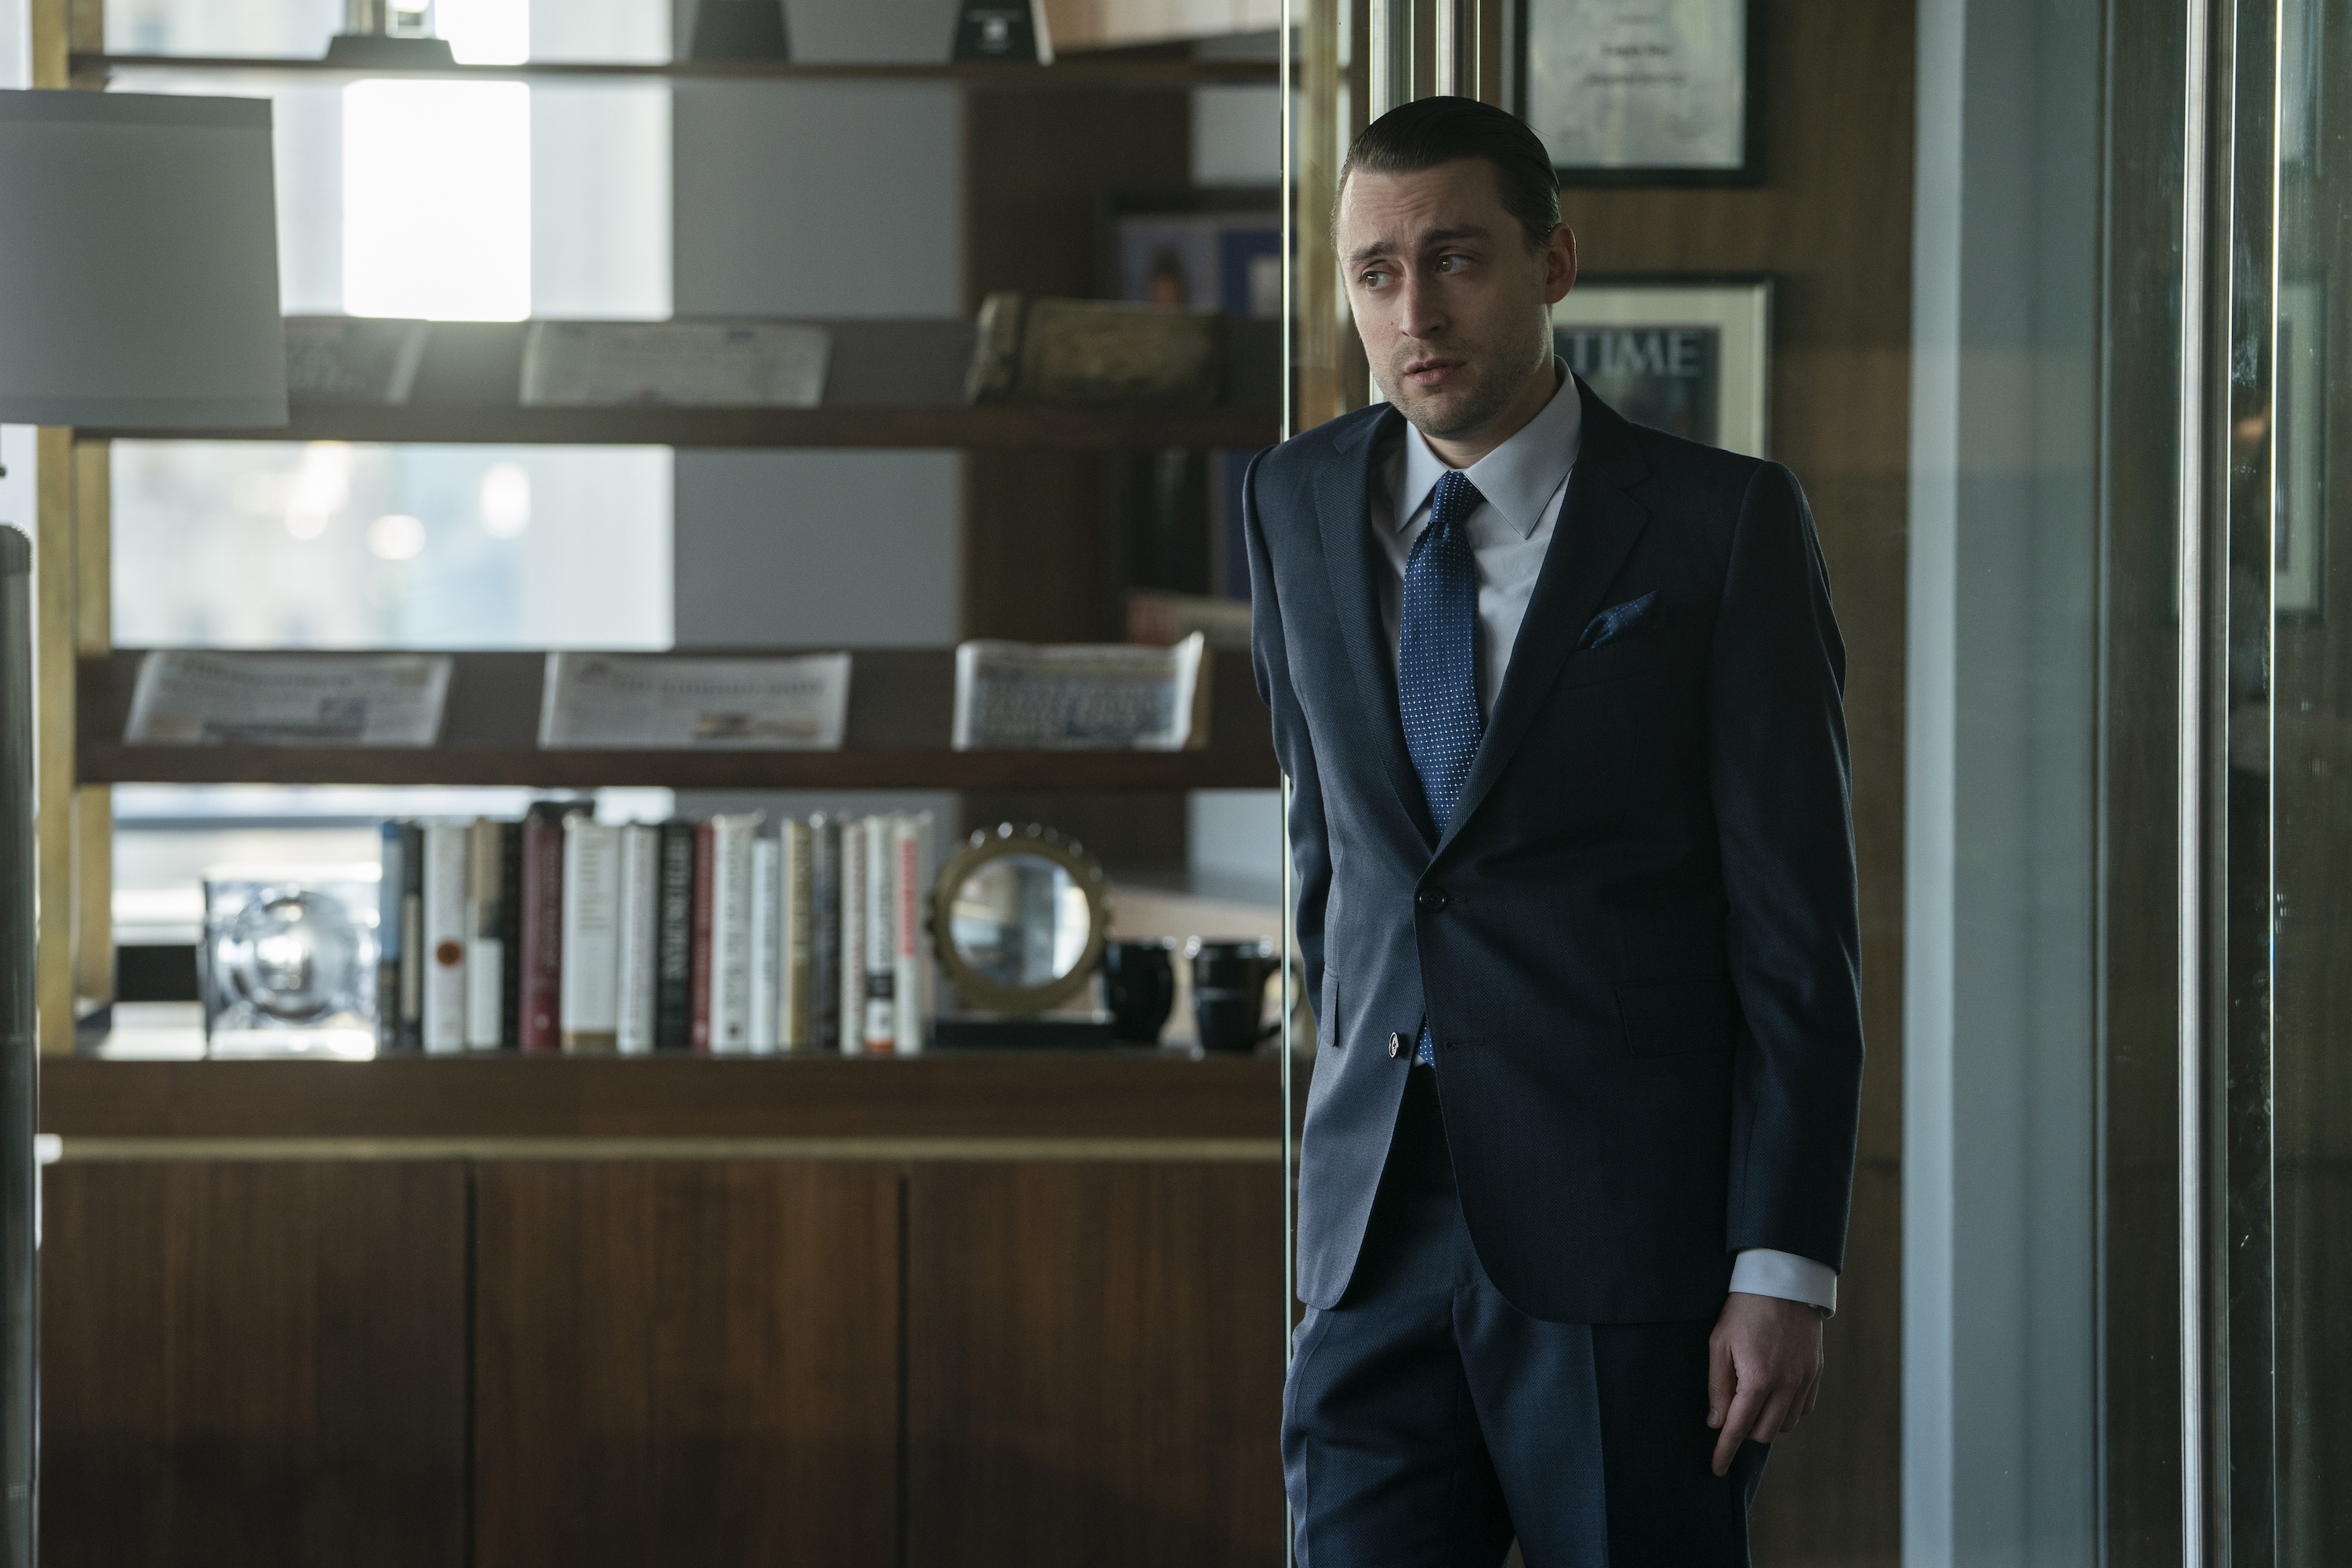 Roman (Culkin) raises an eyebrow as he stands in his father's office.